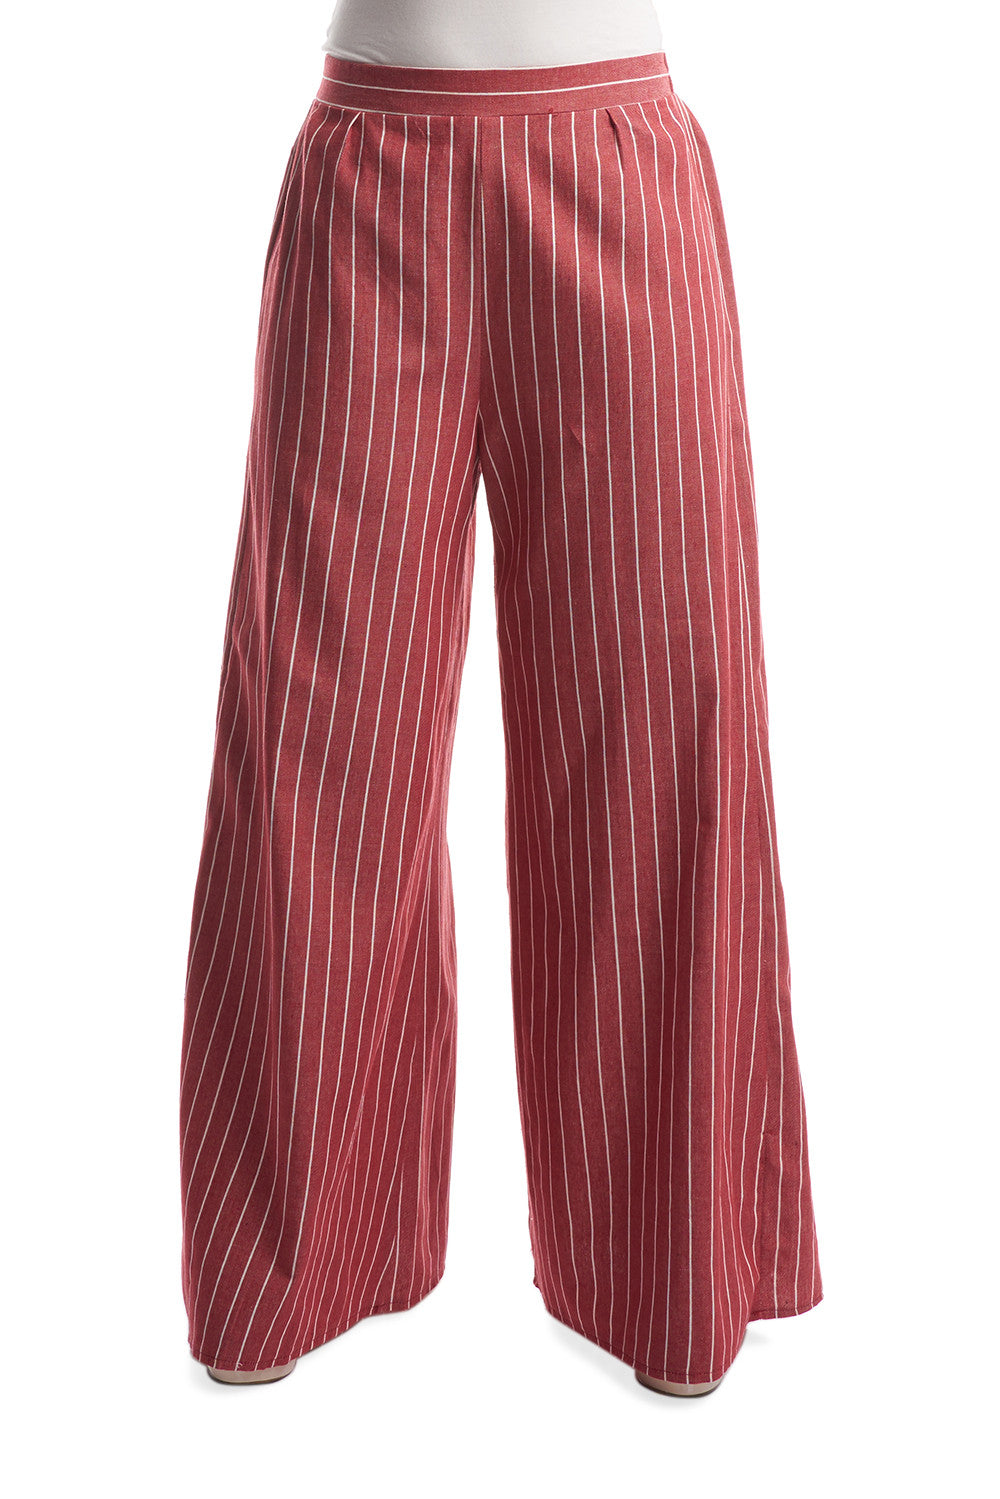 Striped Palazzo Pants in Red